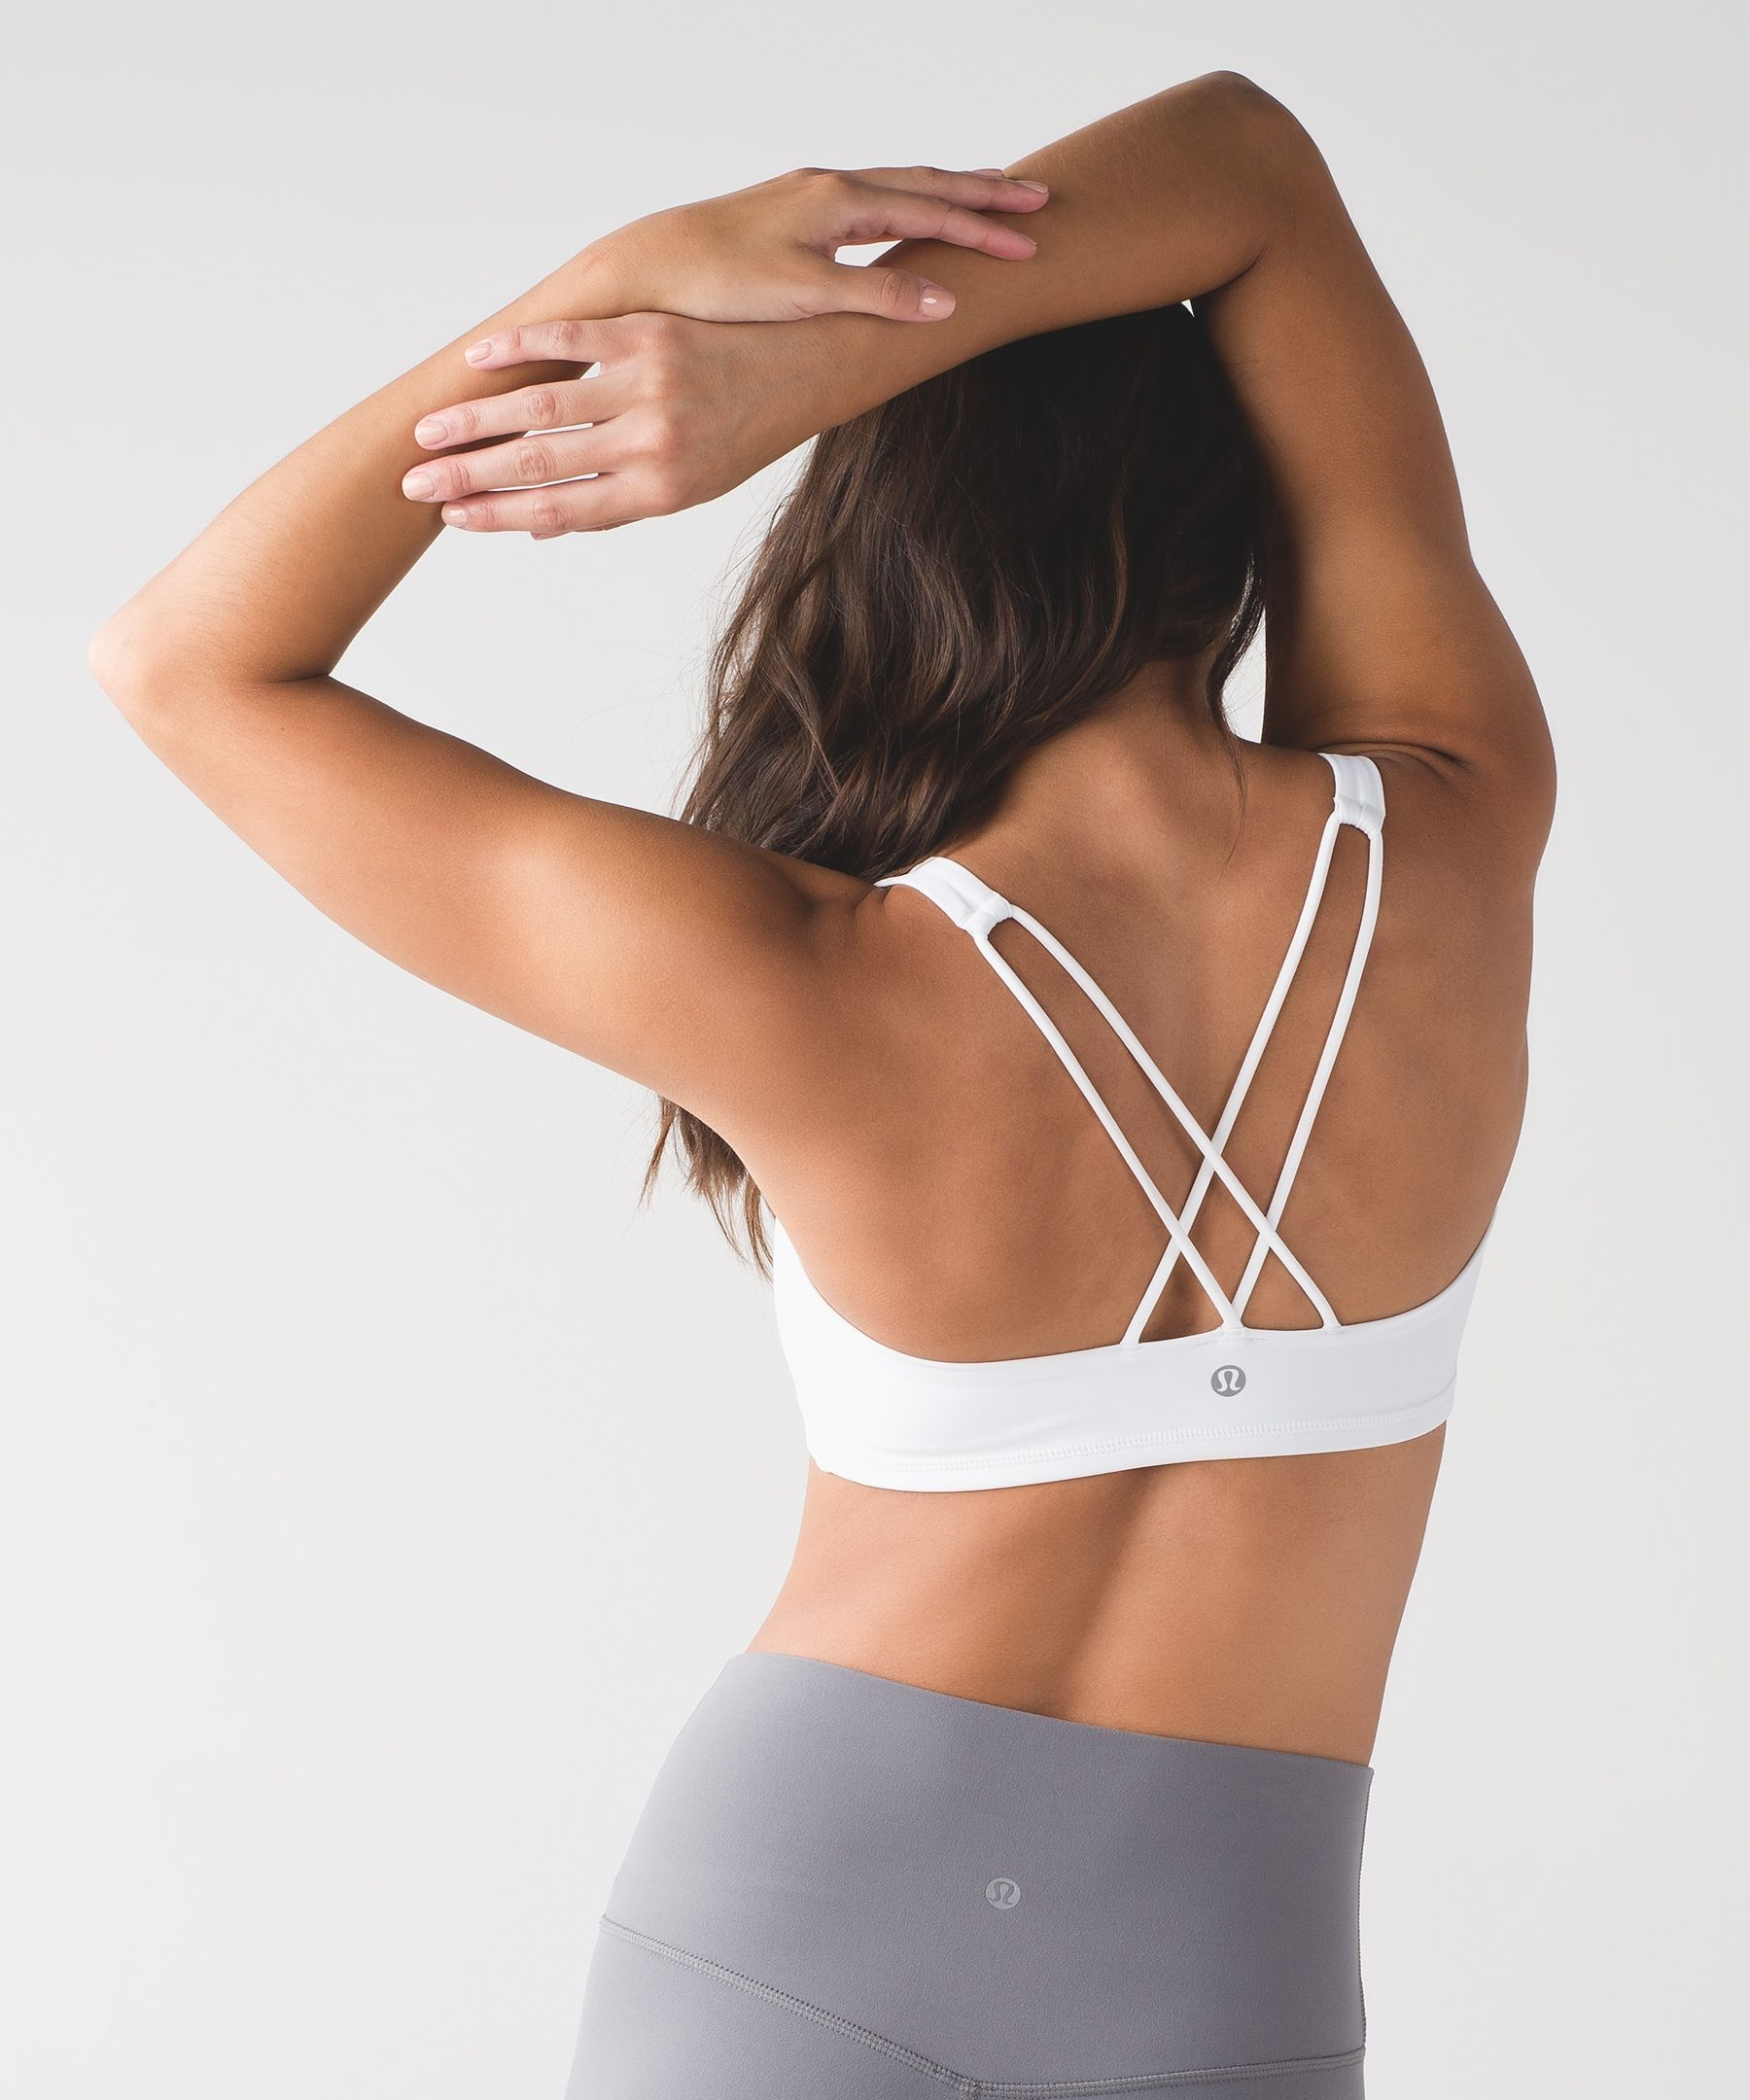 Free To Be Bra Online Only Yoga Bras Lululemon Athletica In